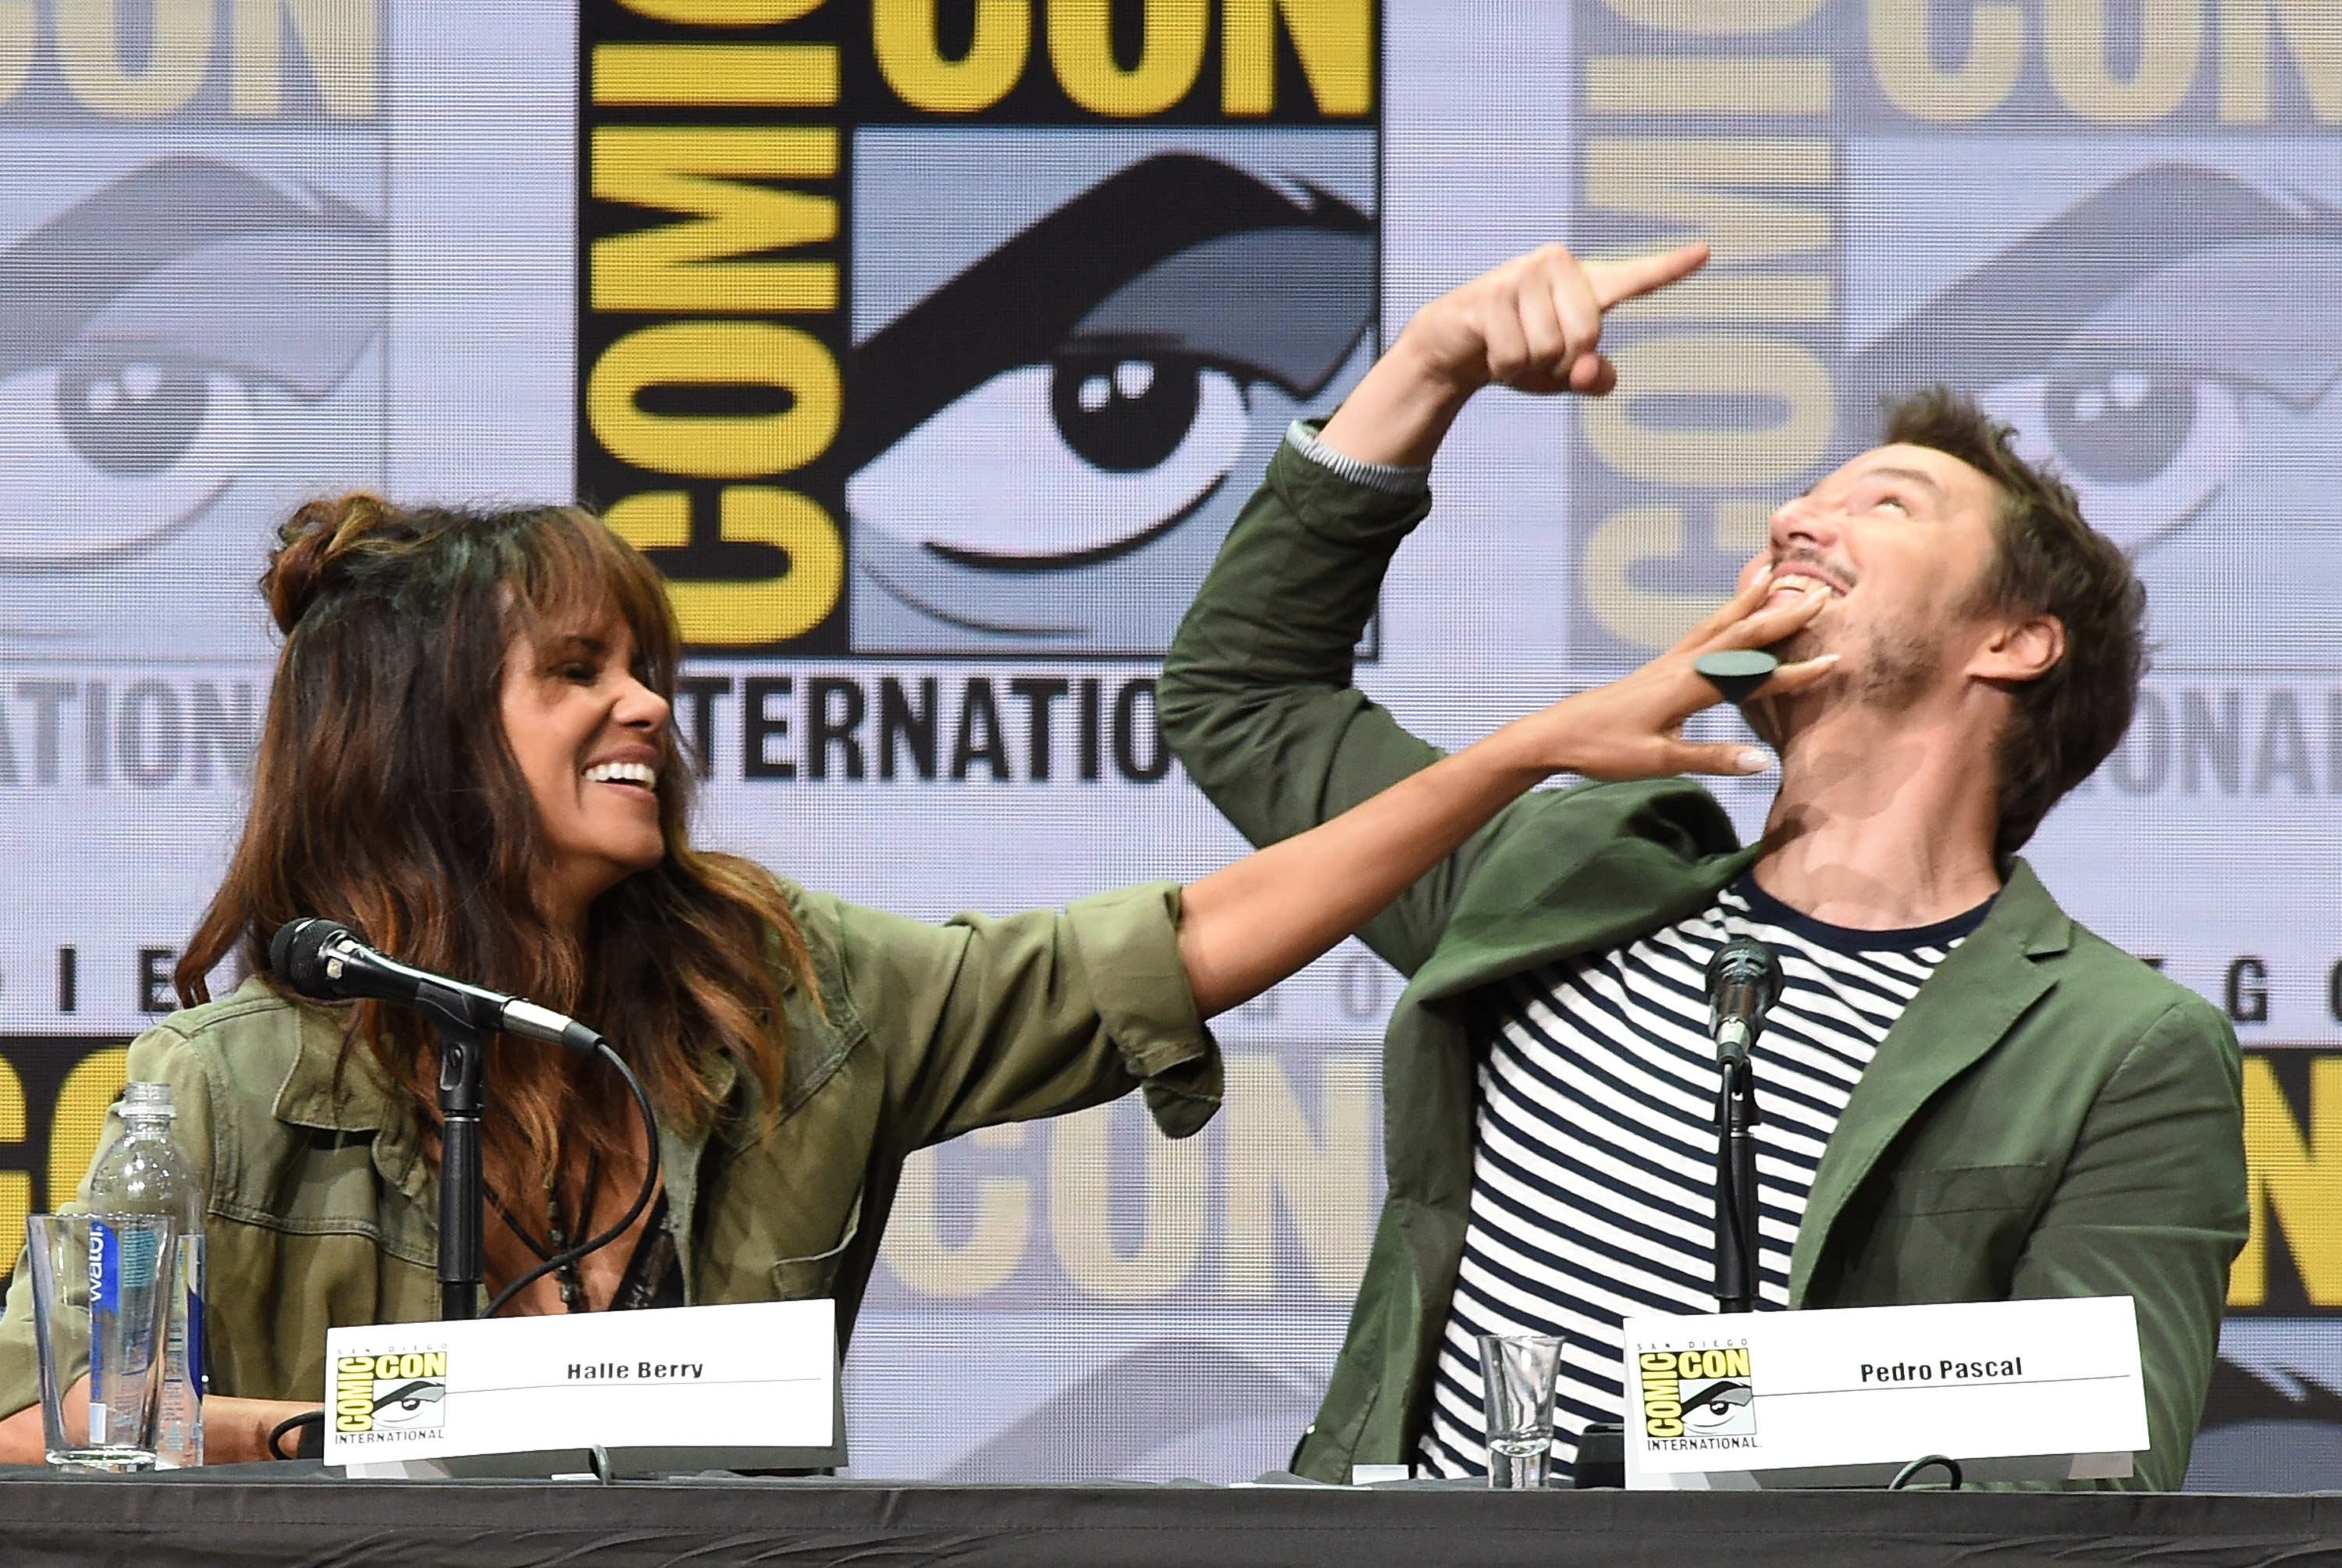 SAN DIEGO, CA - JULY 20:  Actors Halle Berry (L) and Pedro Pascal speak onstage at the 20th Century FOX panel during Comic-Con International 2017 at San Diego Convention Center on July 20, 2017 in San Diego, California.  (Photo by Kevin Winter/Getty Images)